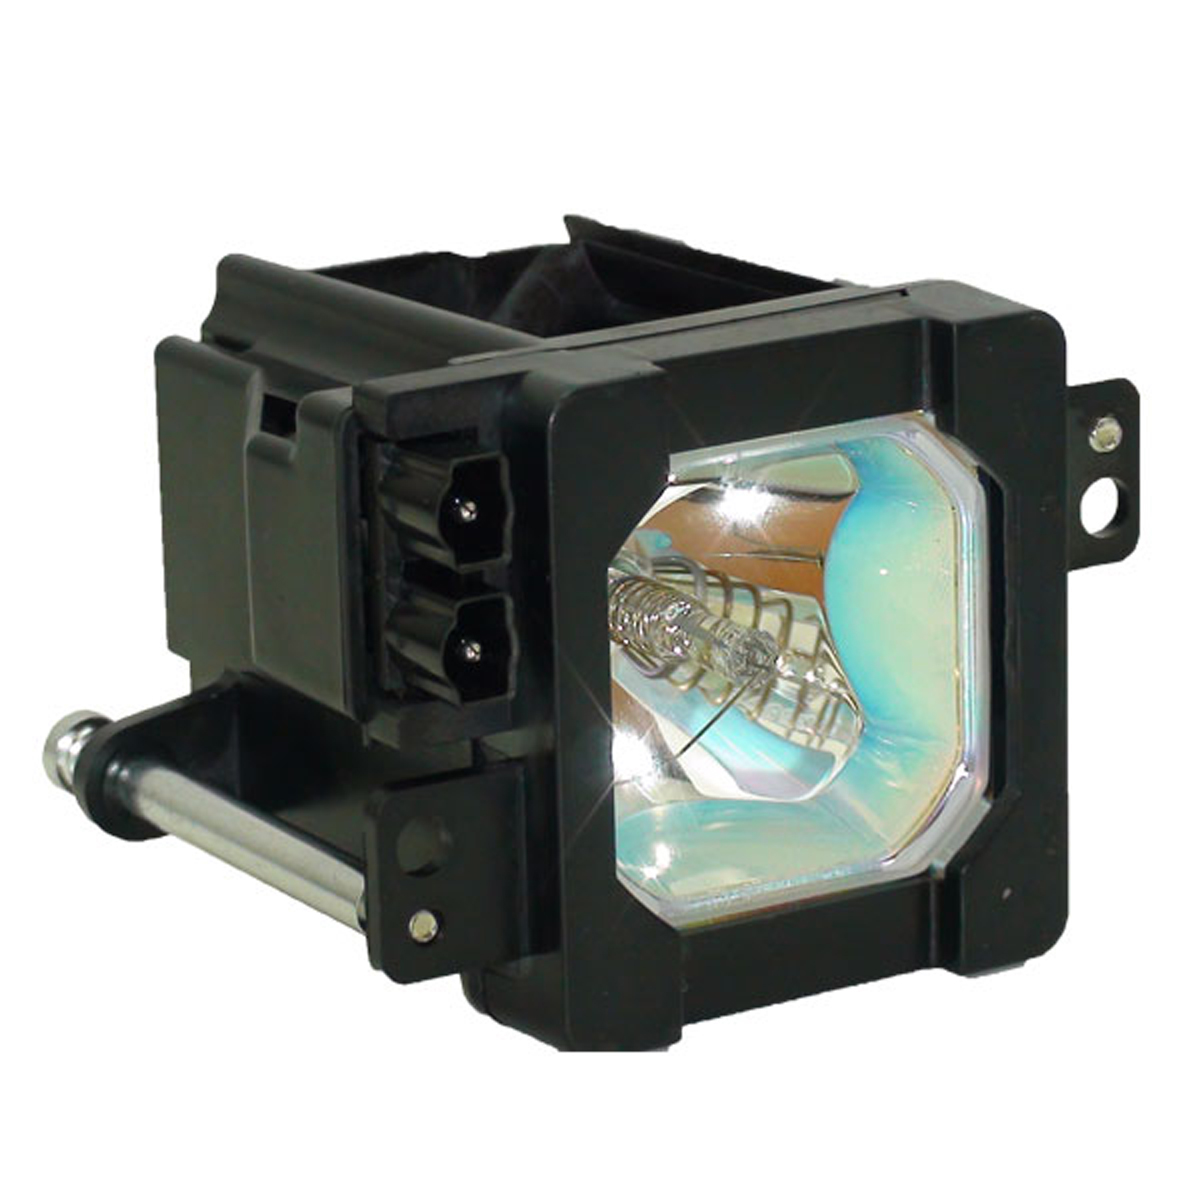 Lamp Cartridge For Mitsubishi Tv: Lamp Housing For JVC BHL5101S Projection TV Bulb DLP